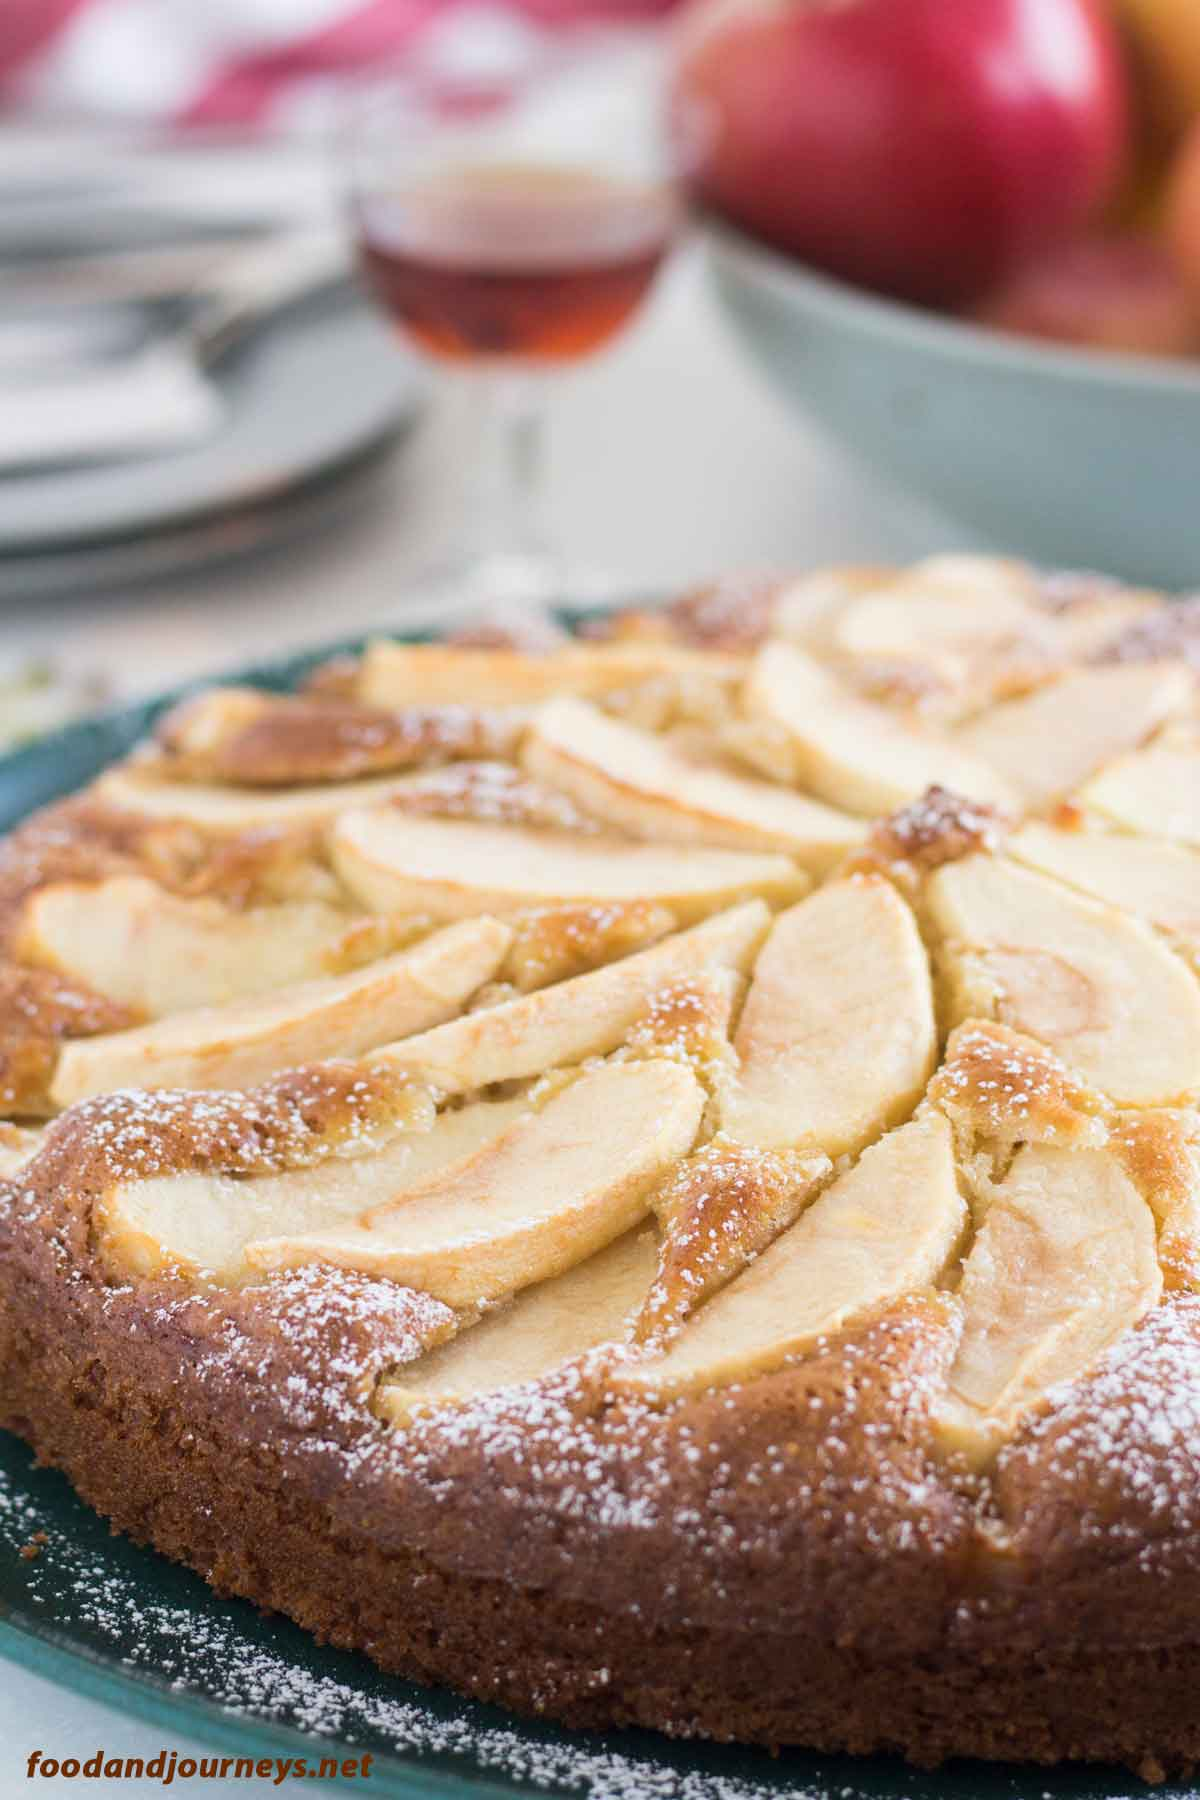 A closer image of Tuscan Apple Cake from the side|foodandjourneys.net